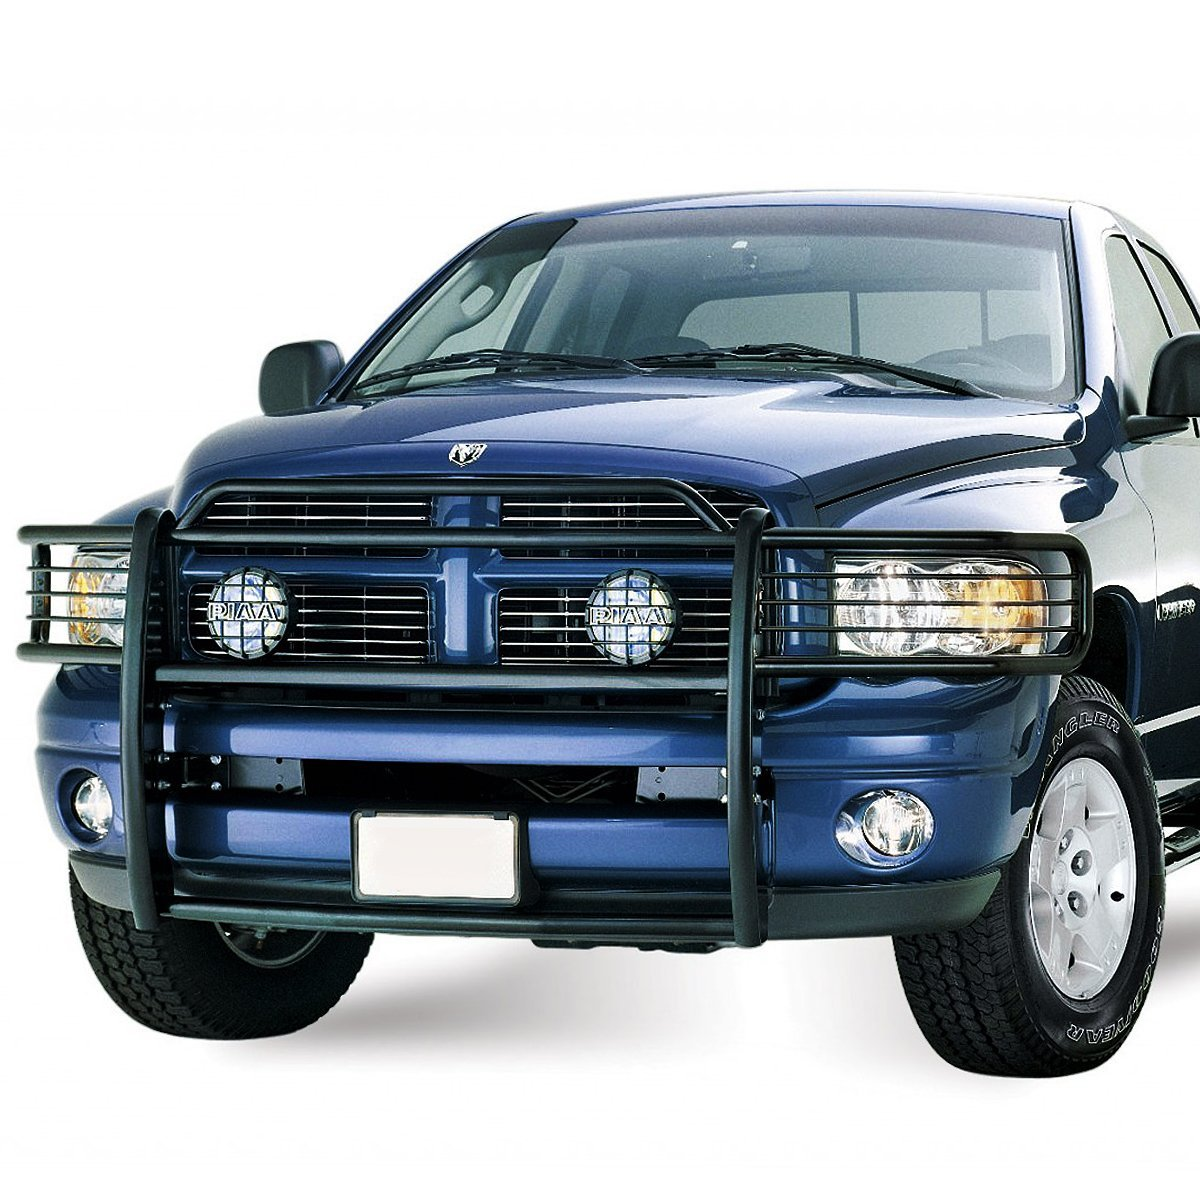 ram 1500 bumper guard wiring diagrams wiring diagram schemes. Black Bedroom Furniture Sets. Home Design Ideas